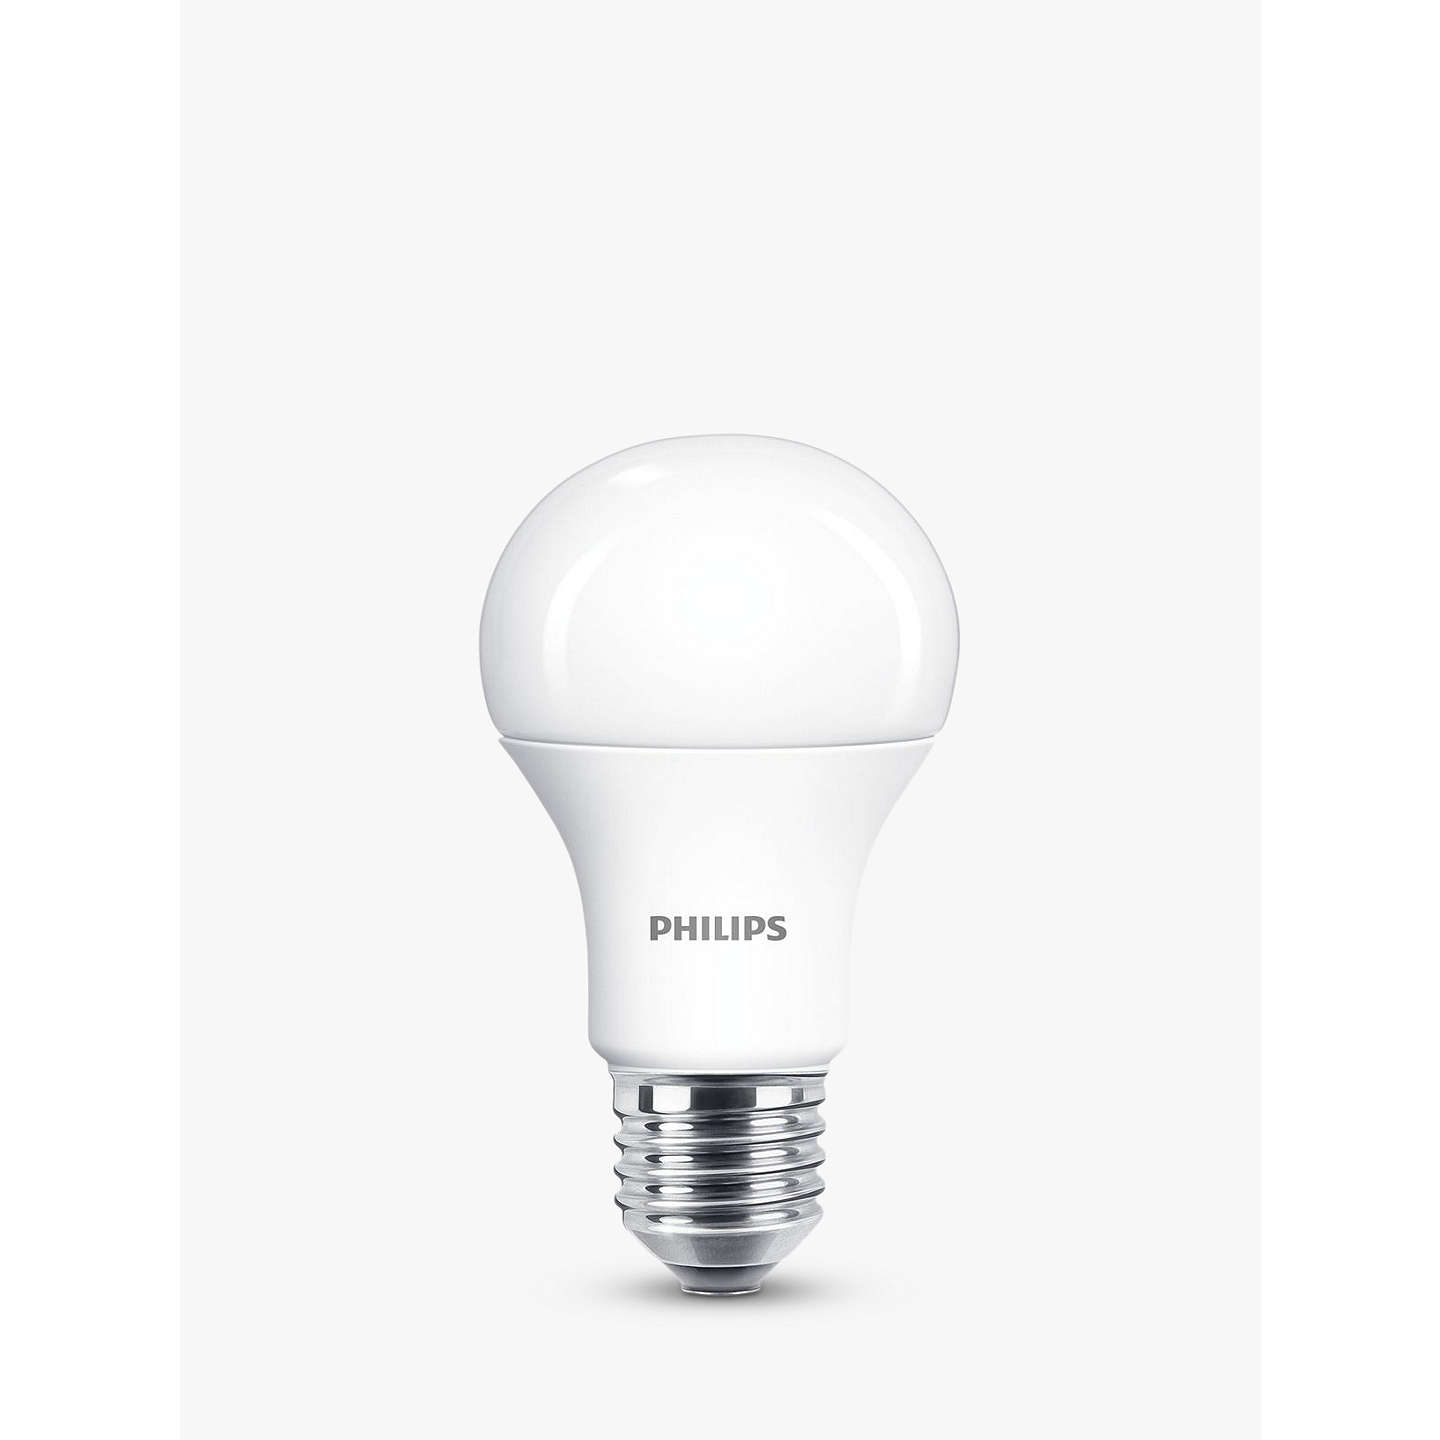 BuyPhilips 12.5W ES LED Bulb, Cool White, Non Dimmable Online at johnlewis.